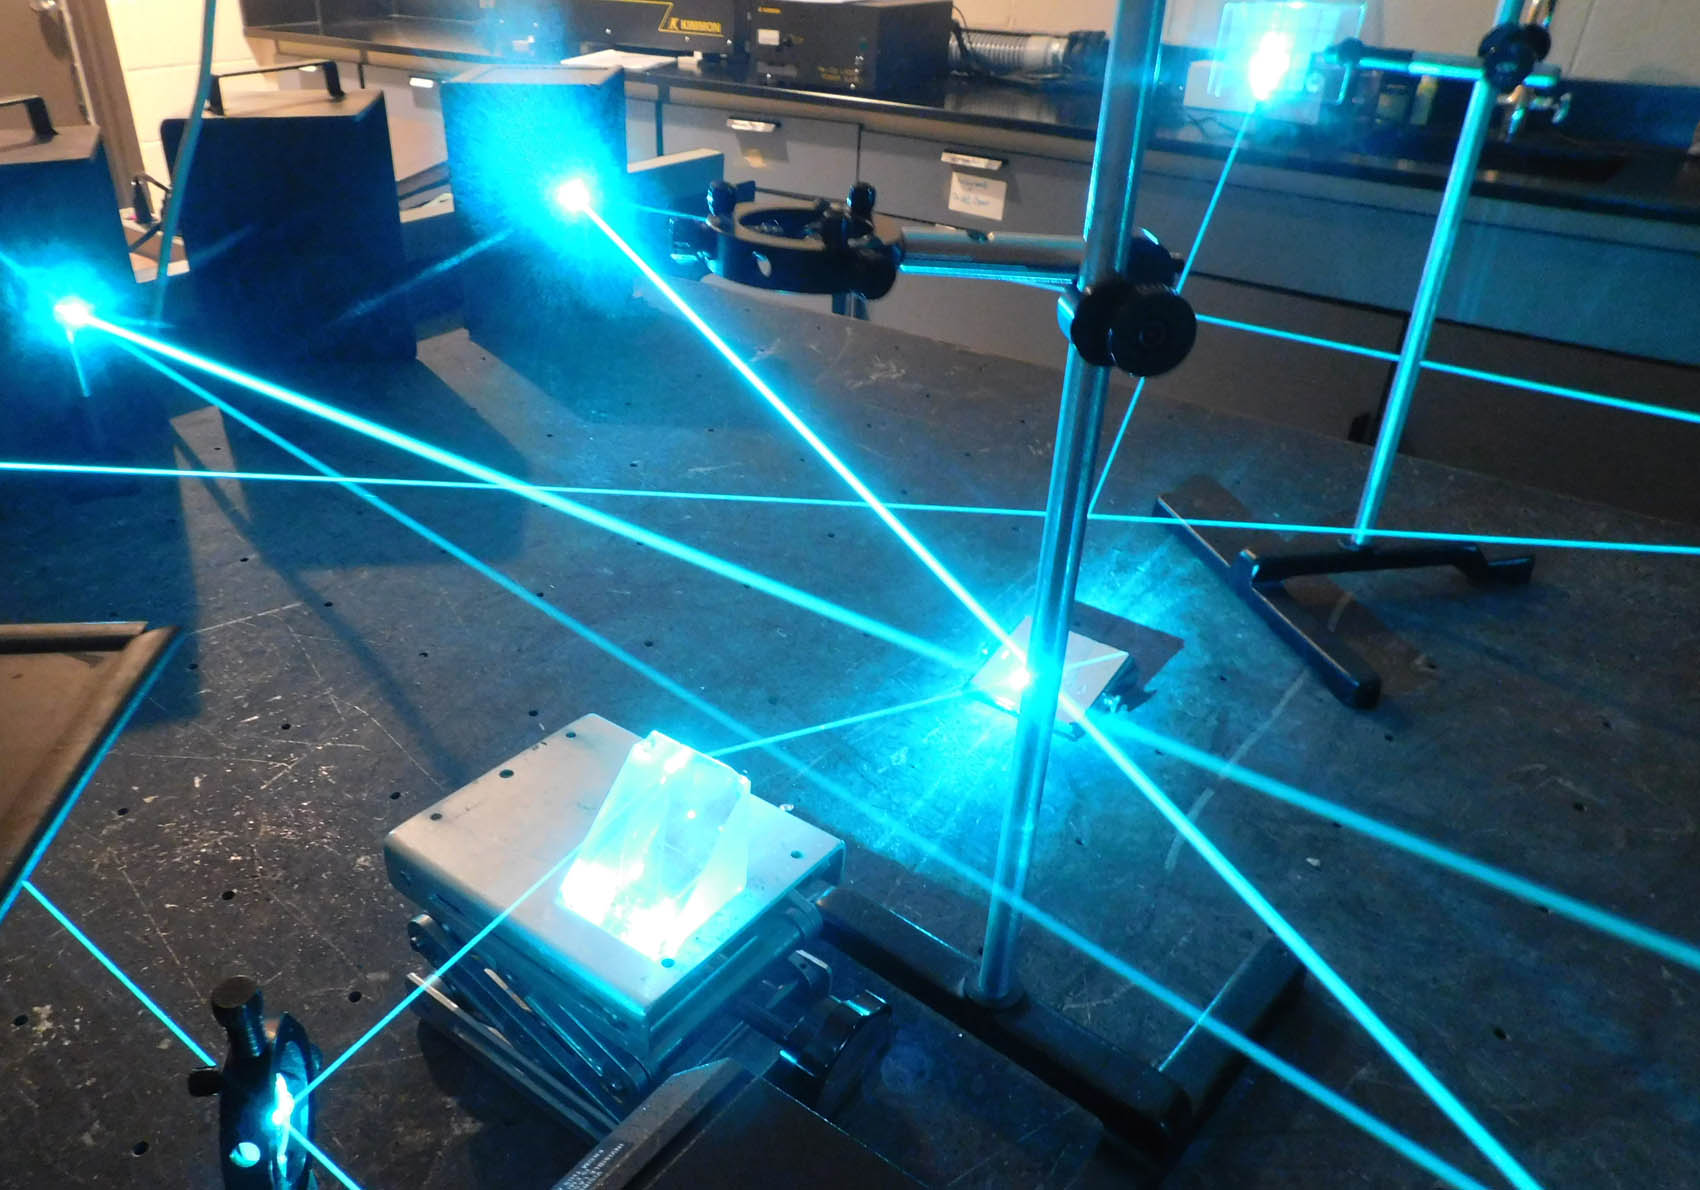 Read the full story, Day of Photonics will be observed on CCCC Harnett Main Campus